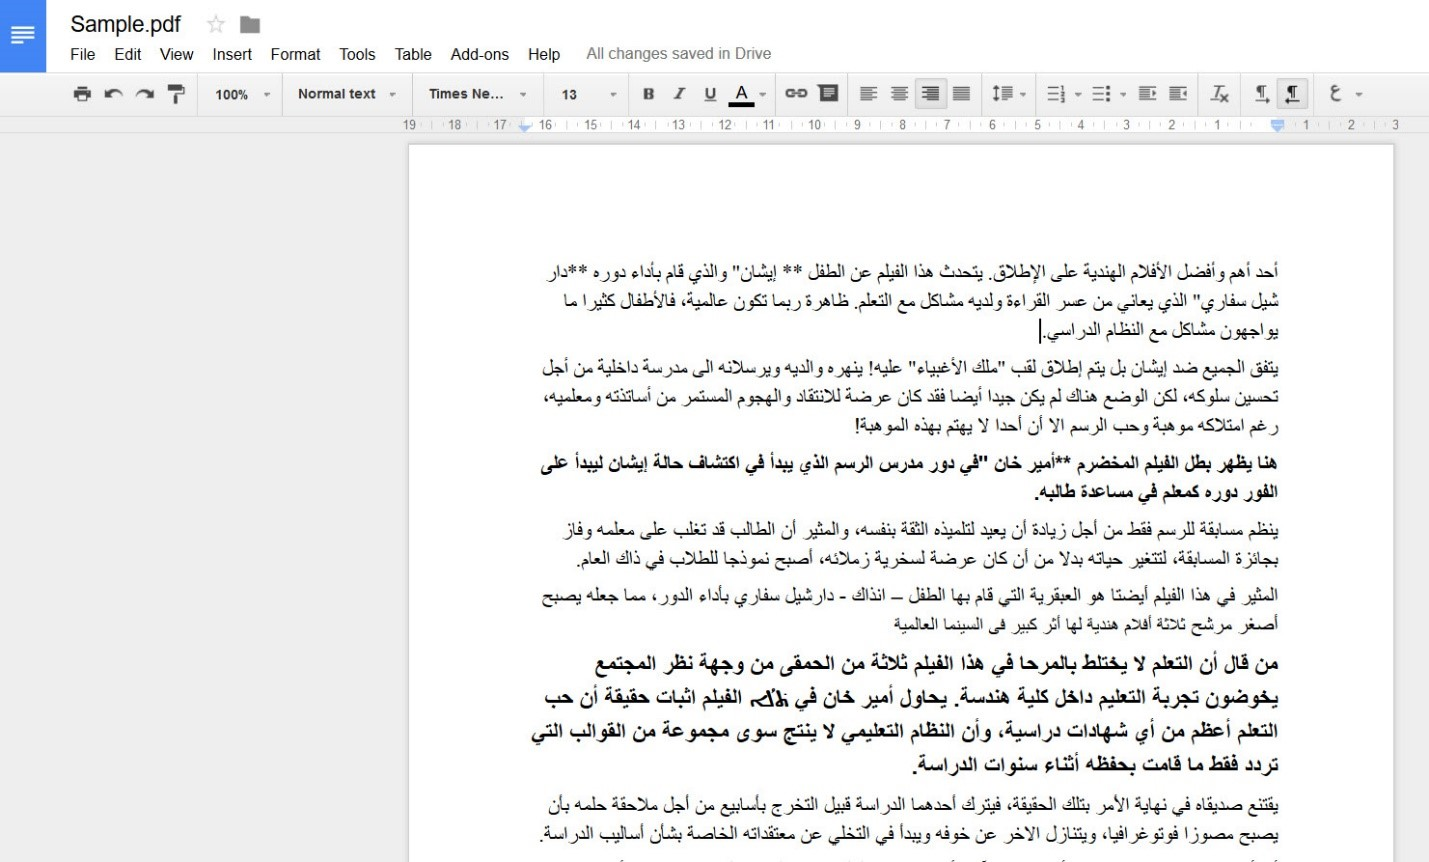 Third Step: Download The New Document Containing The Arabic Text To Your Puter By Selecting File Menu > Download As > Microsoft Word (cx)